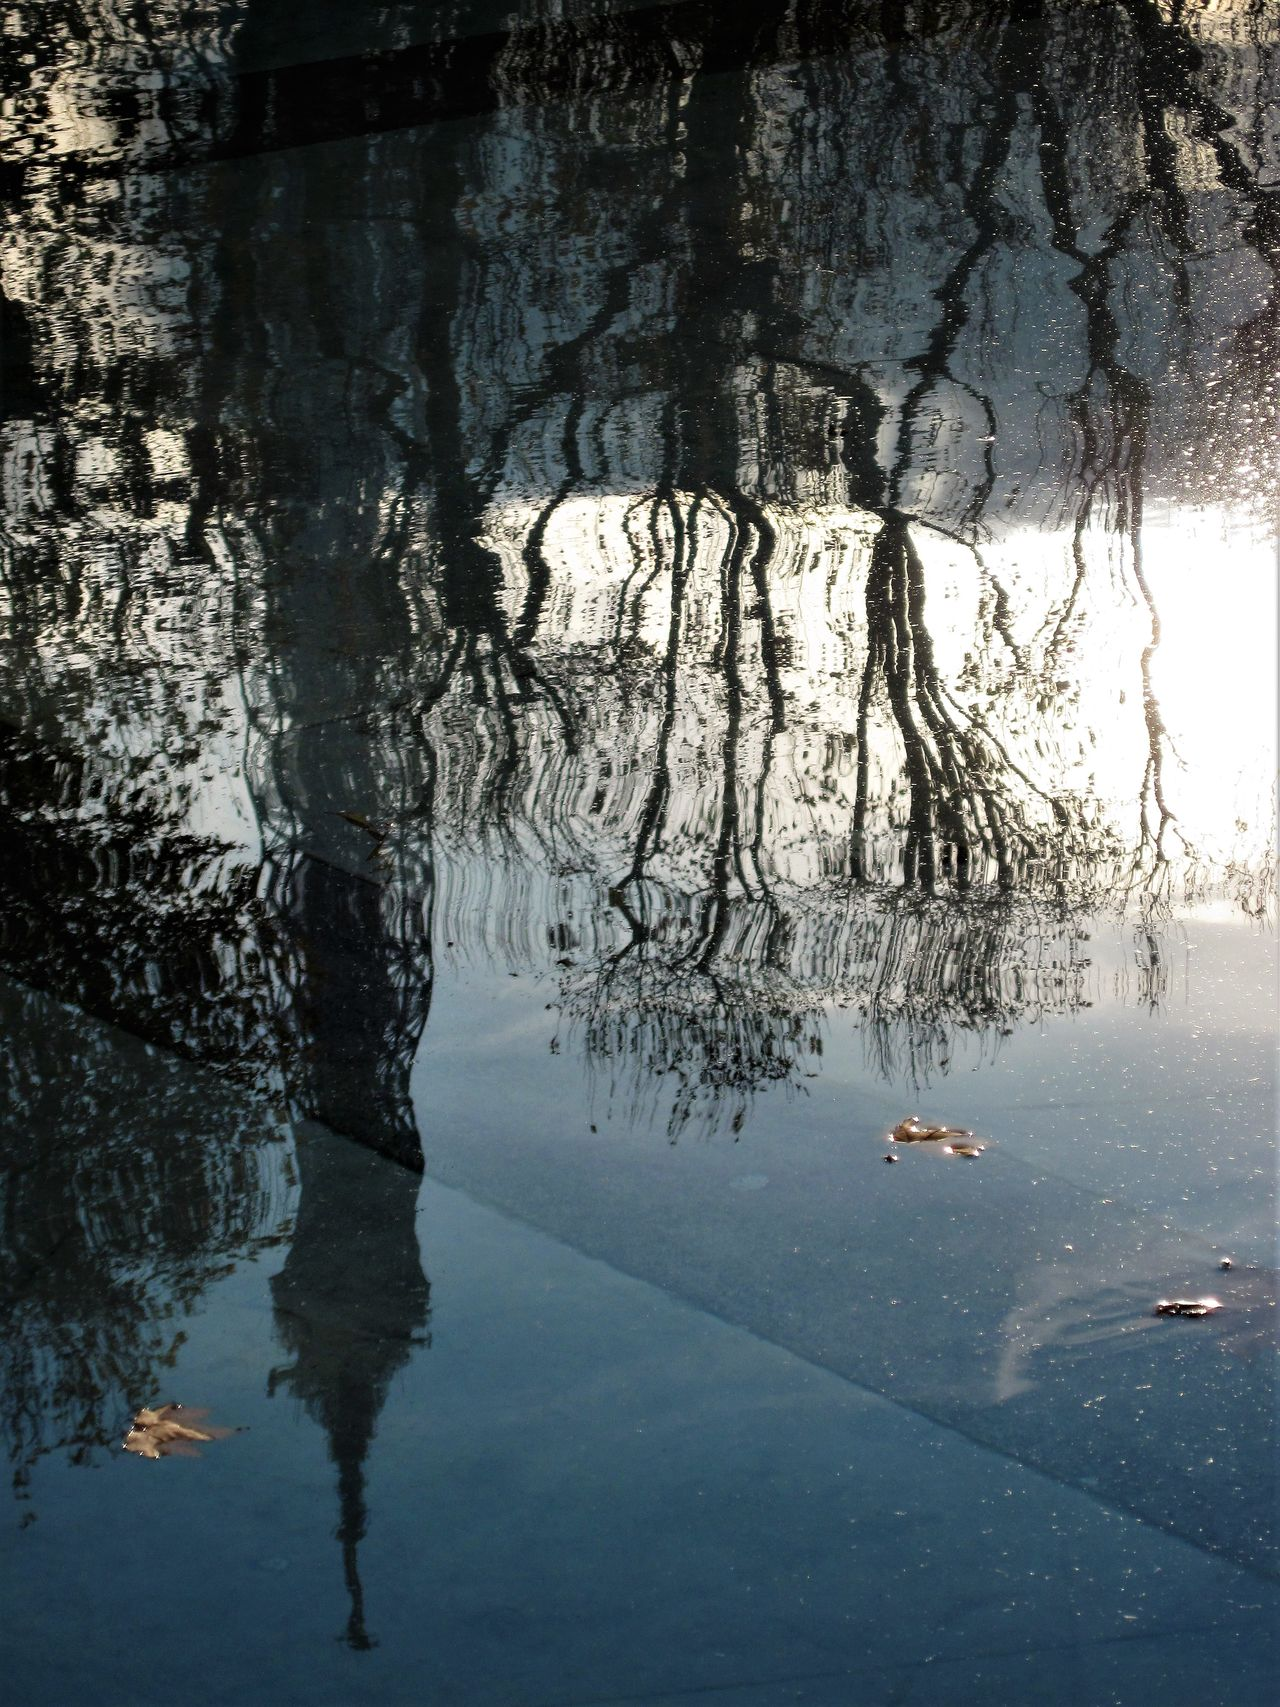 Beauty In Nature Day Eiffel Tower Nature No People Outdoors Reflection Tranquility Tree Water